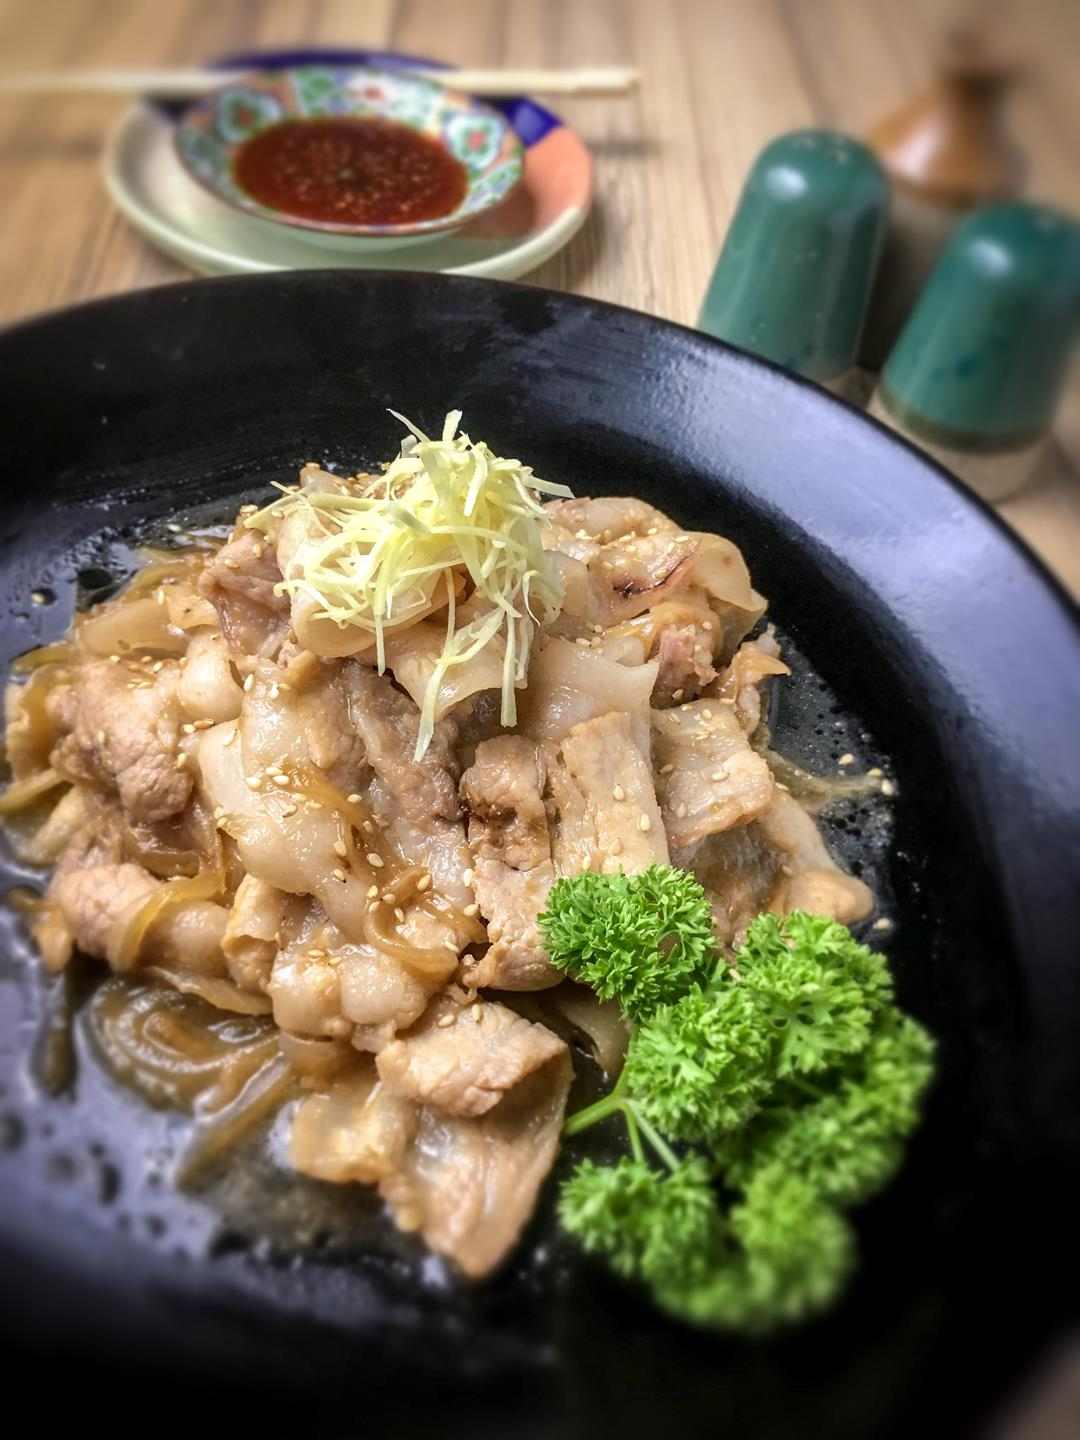 Buta Shogayaki (Pork Saute with Ginger) This delectable pork dish is perfectly seasoned with gentle zing of ginger.